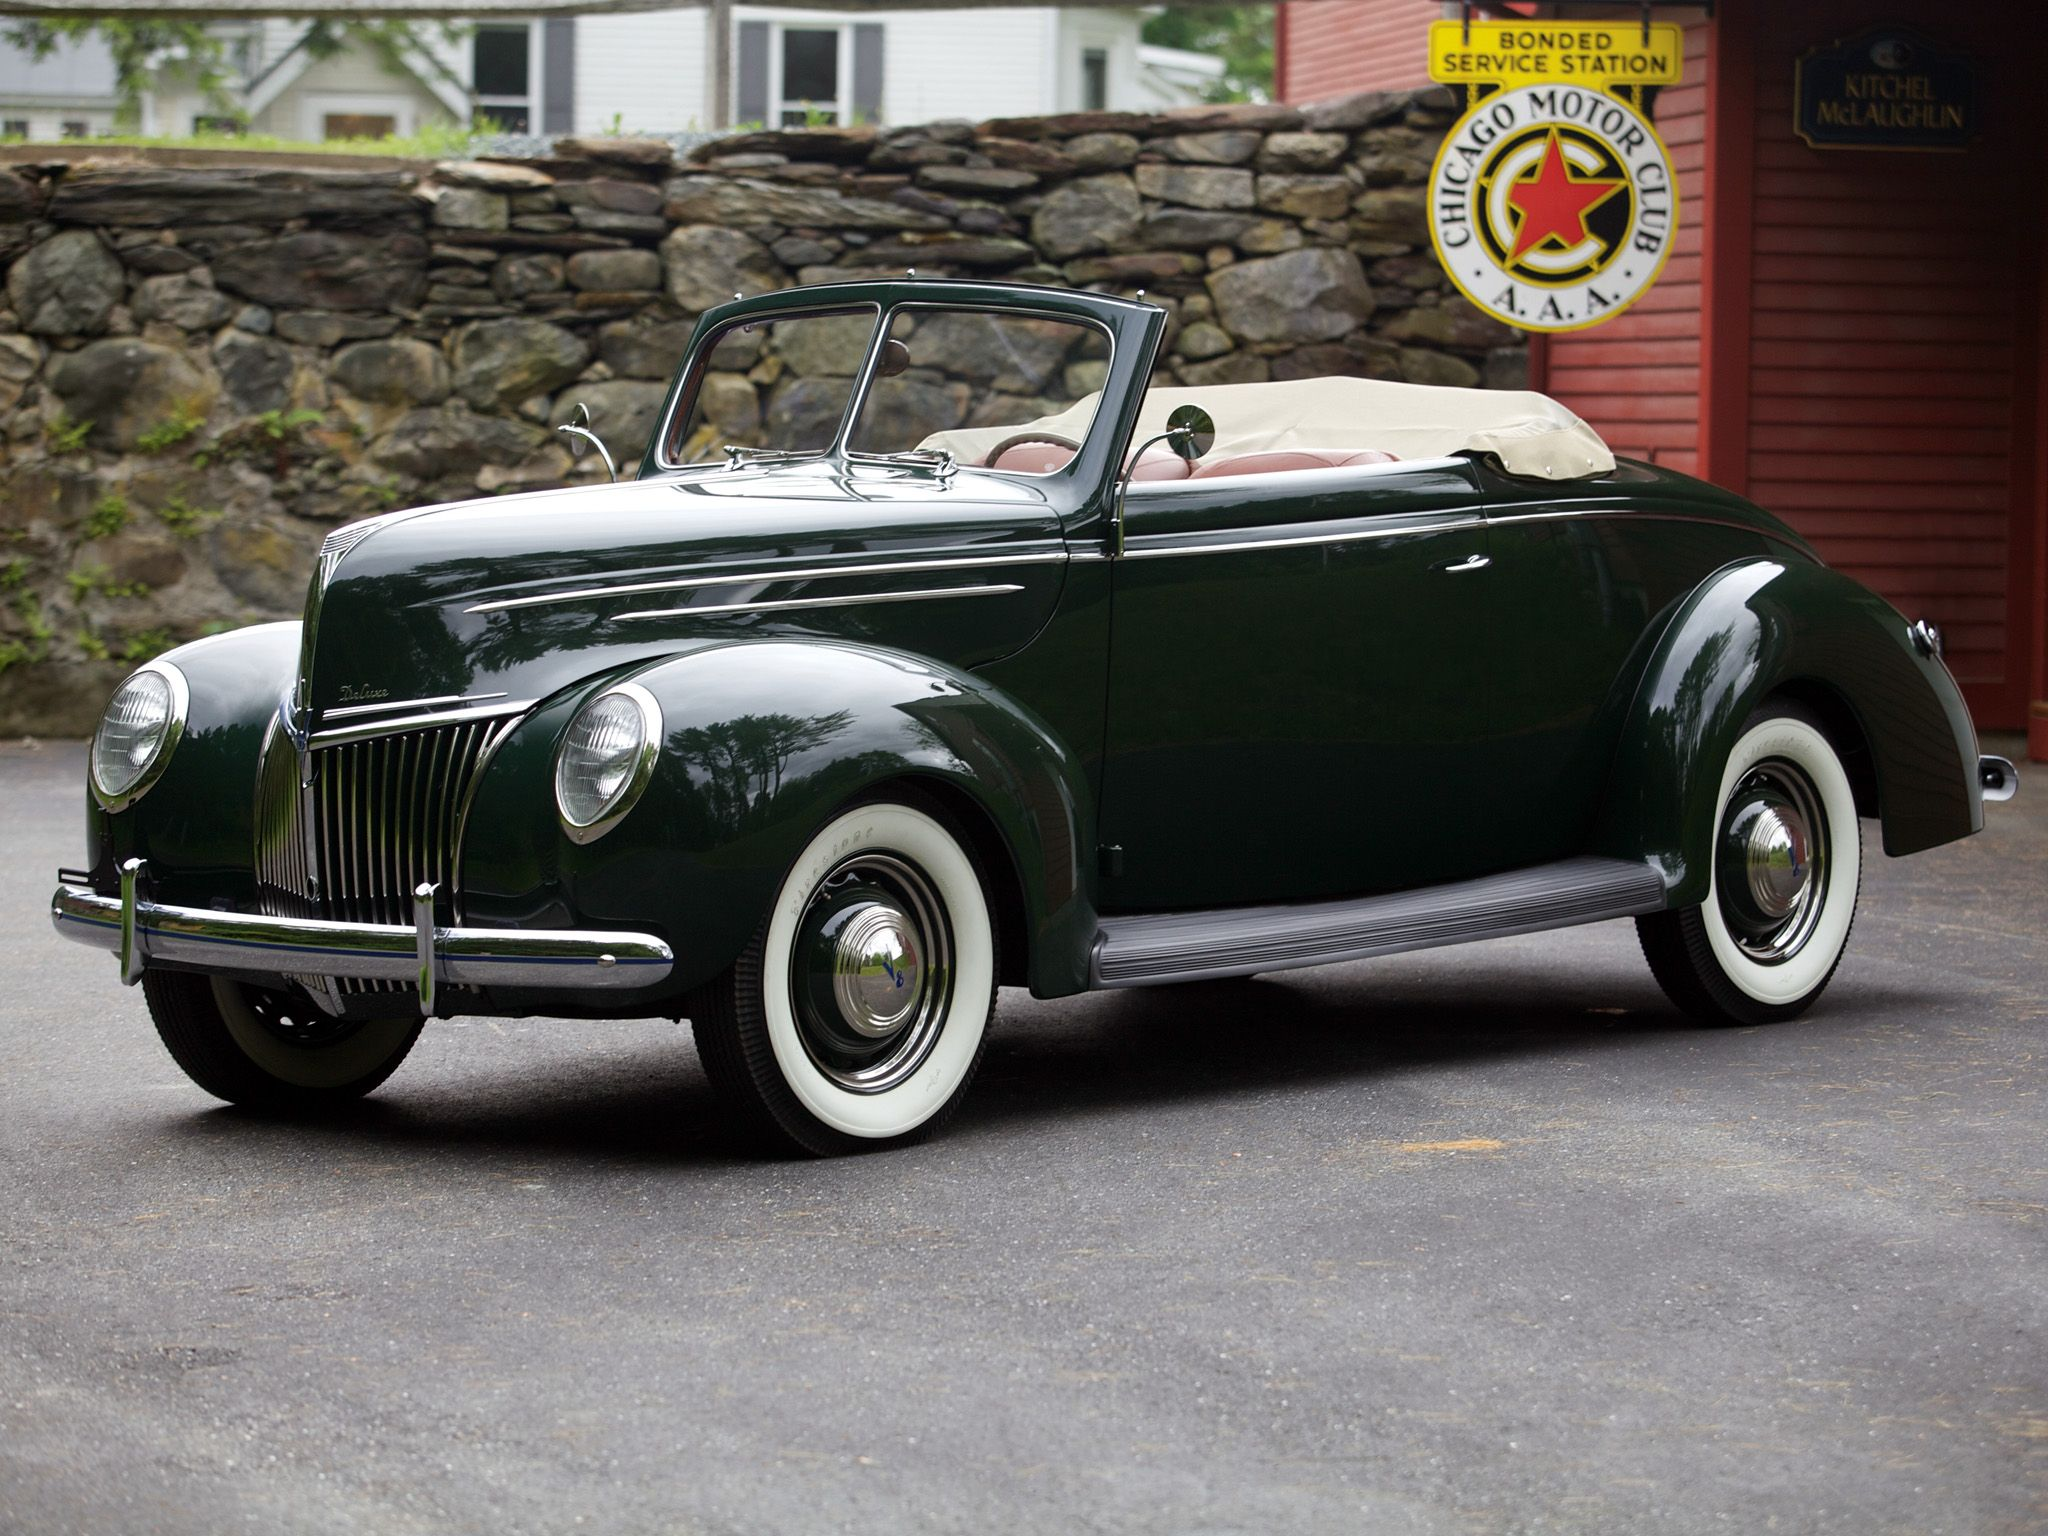 1939 Ford V8 Deluxe Convertible Coupe Retro V 8 H Wallpaper 2048x1536 115538 Wallpaperup Ford Classic Cars Old Classic Cars Ford V8